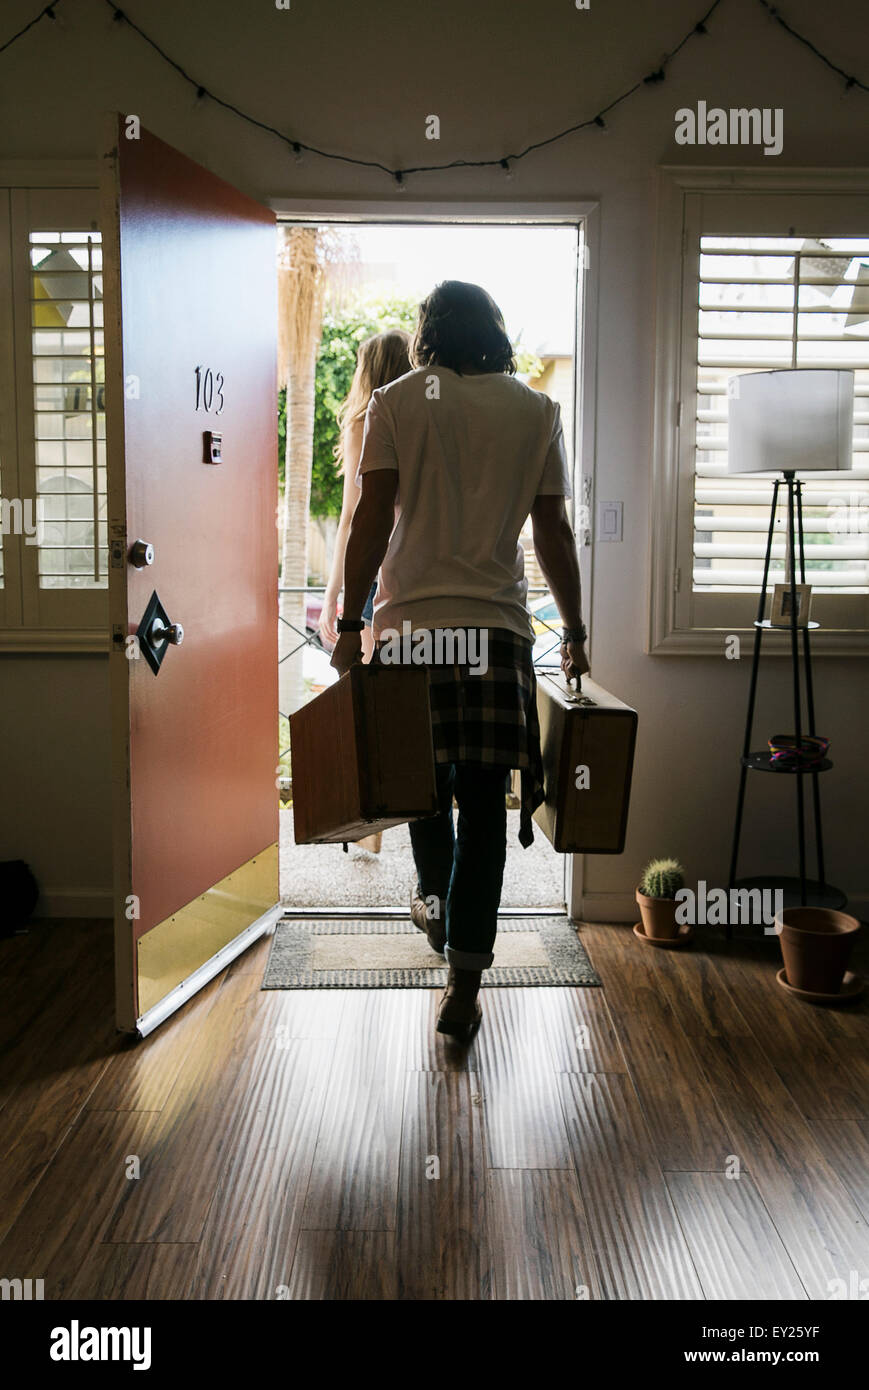 Rear view of young couple carrying suitcases out of front door - Stock Image